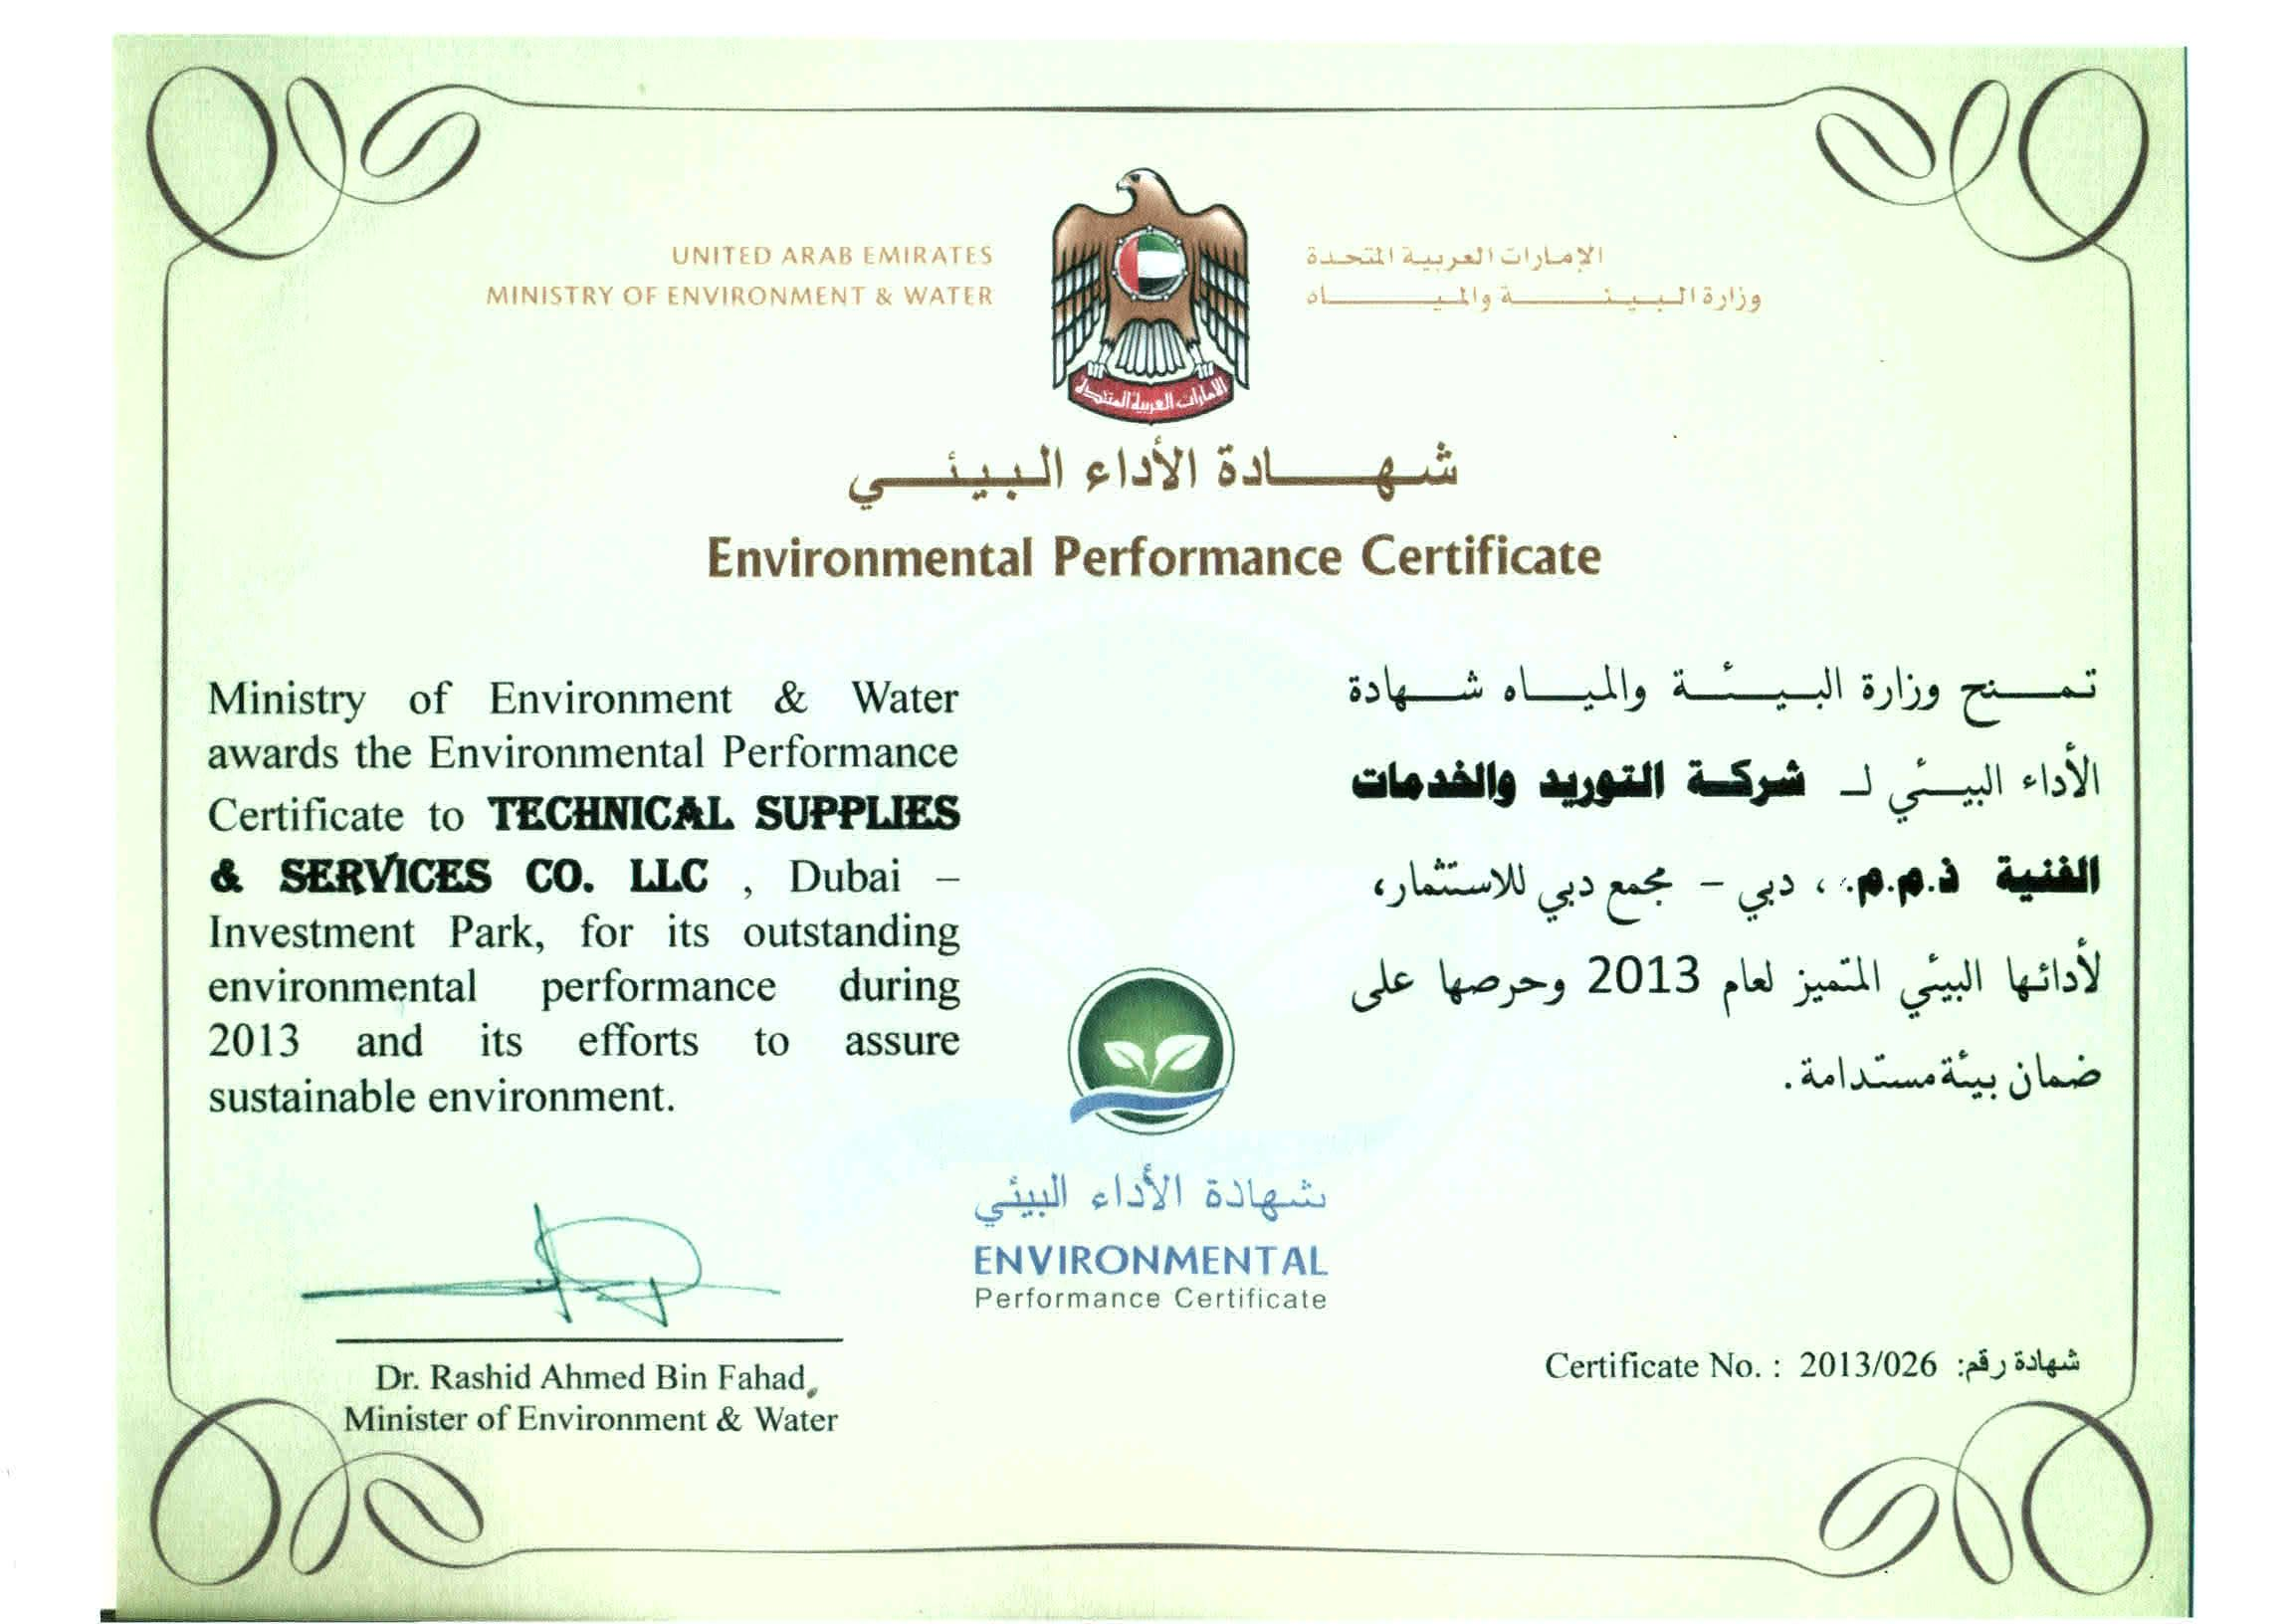 MINISTRY OF CLIMATE CHANGE AND ENVIRONMENT